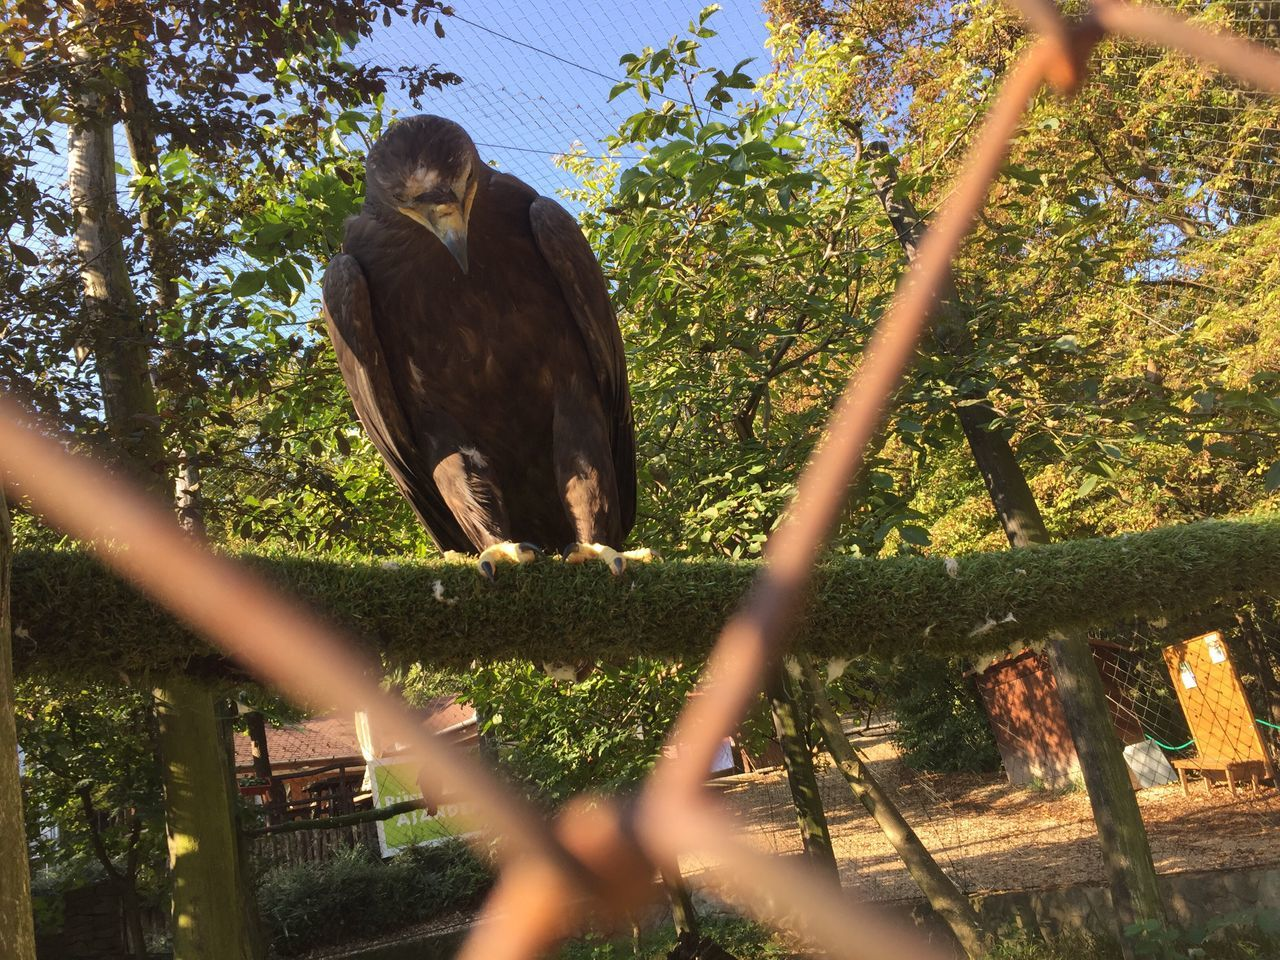 Eagle FlyLikeAnEagle Trapped Bird Never Flying In The Nature Anymore Prisone Sad But Strong PalaPhoto Budapest Budapest, Hungary Hungary